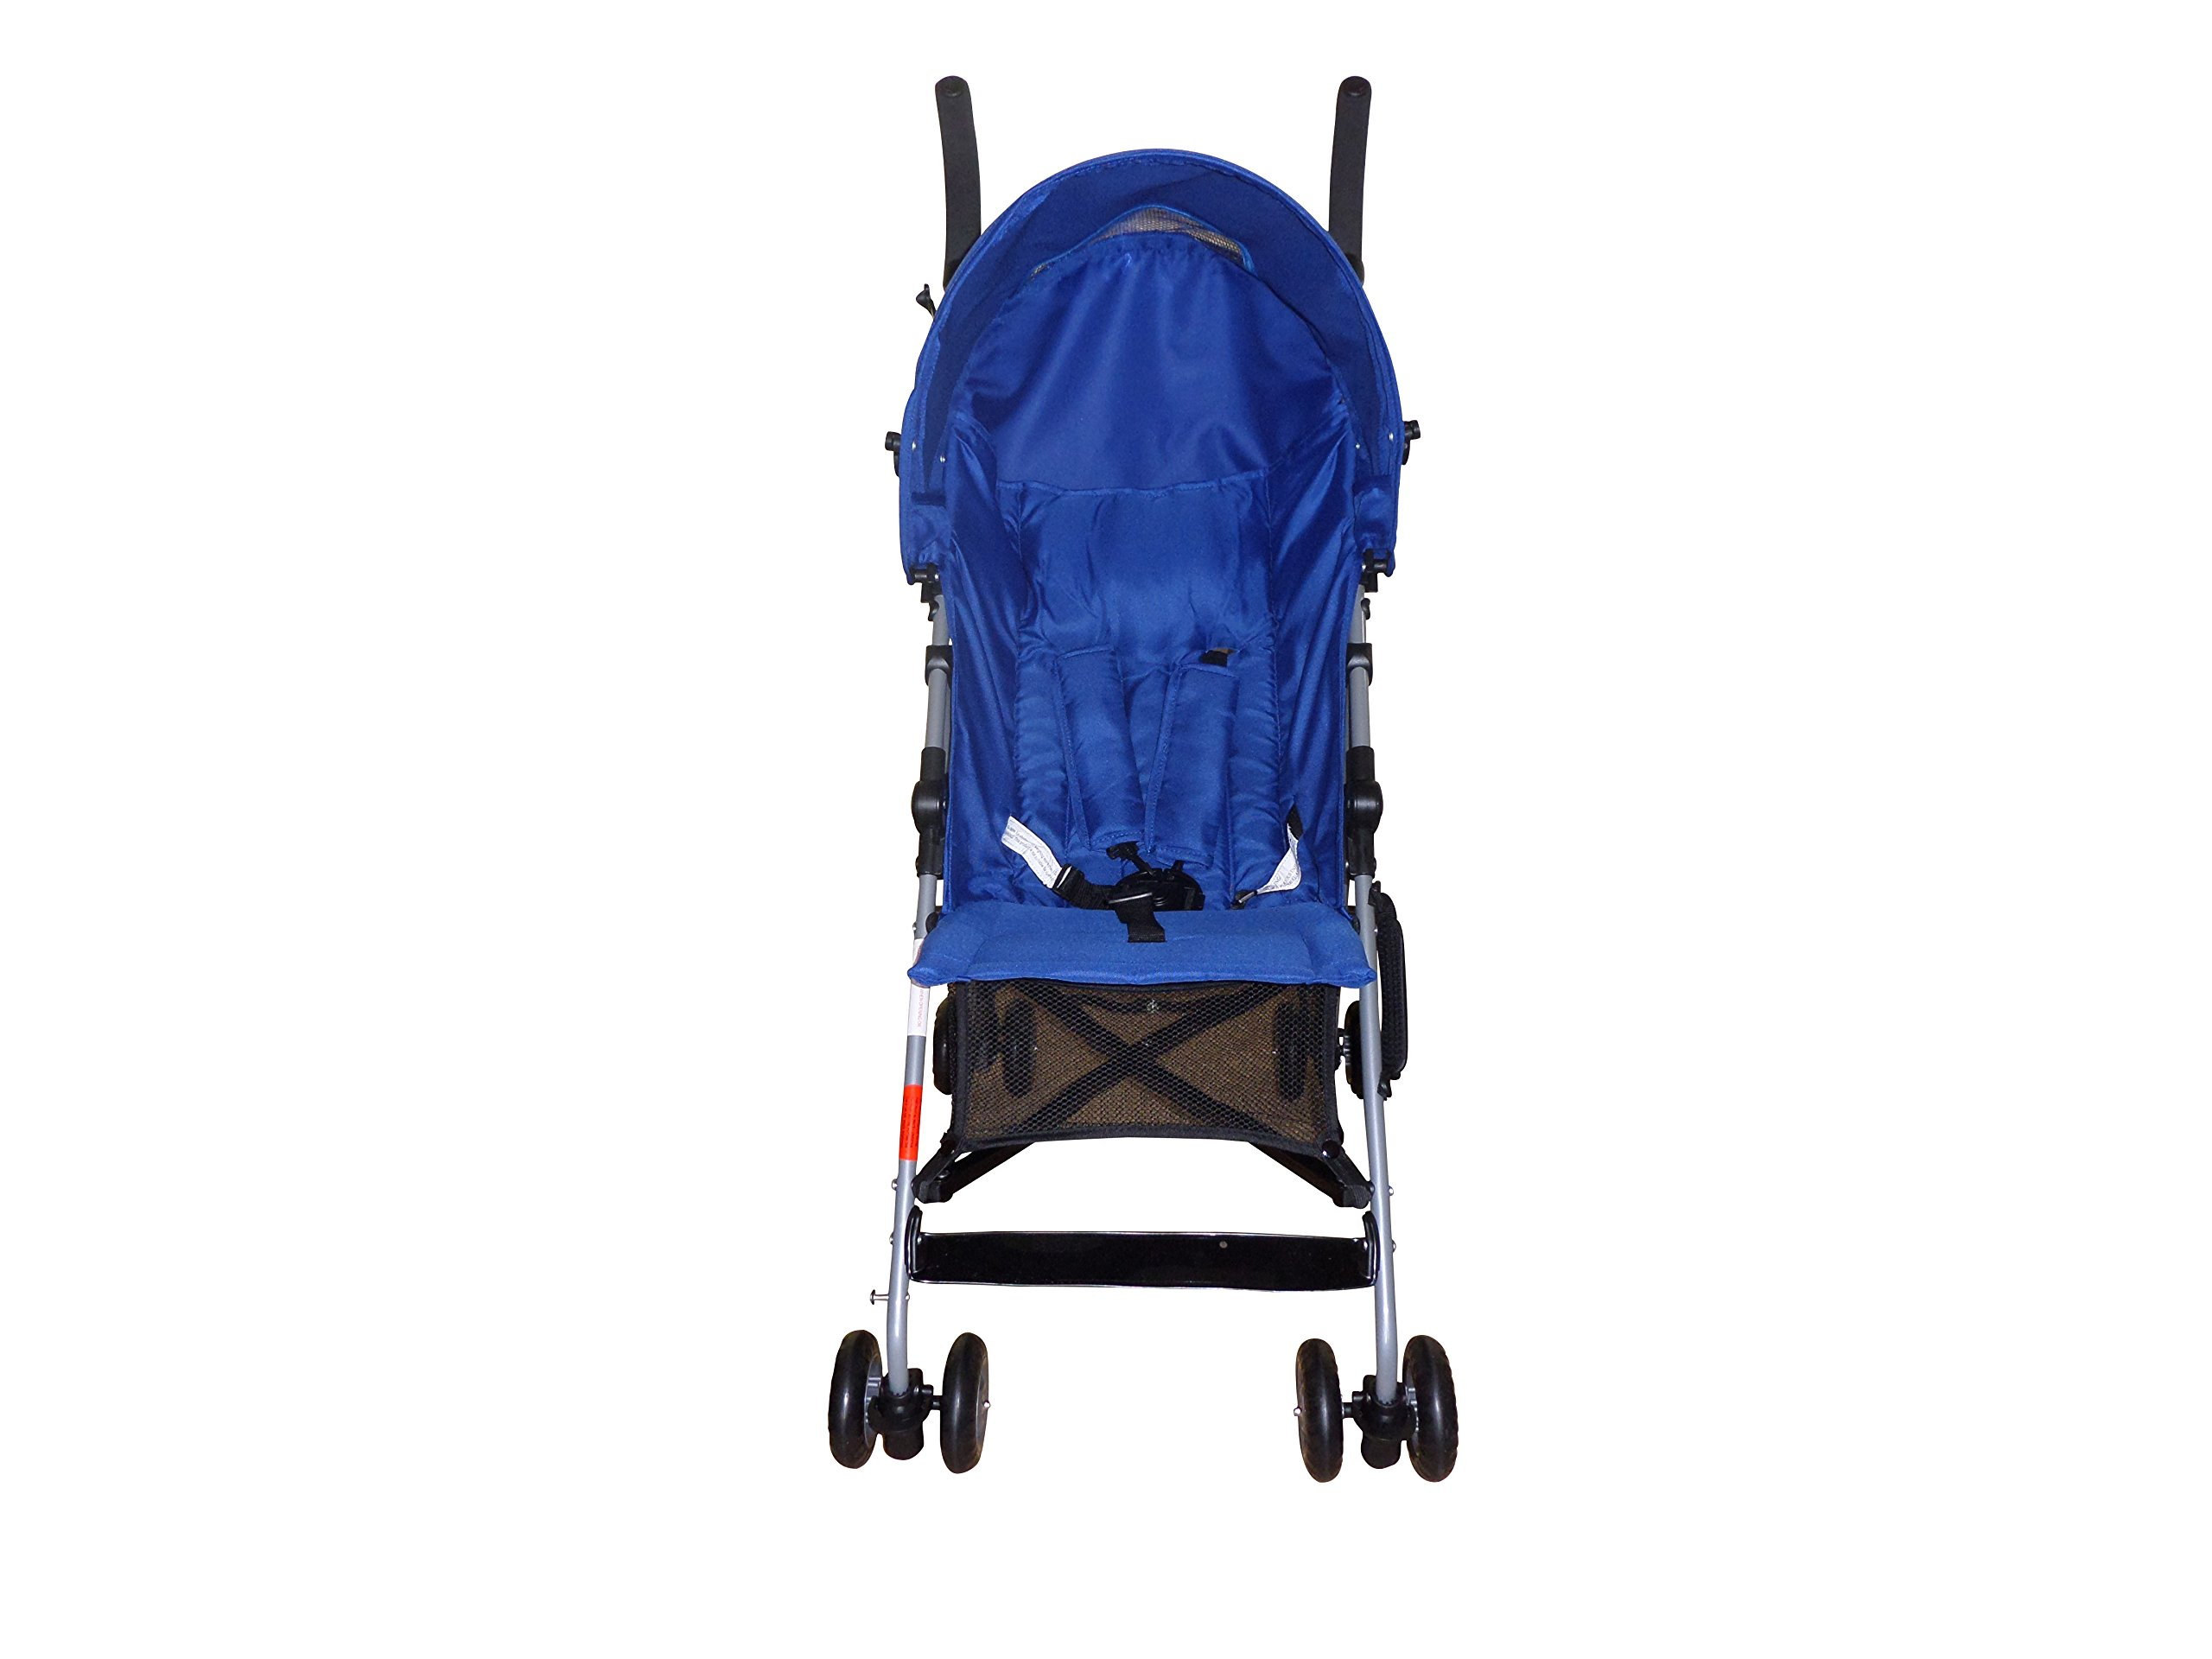 Babyco Trend Light Weight Stroller (Blue)  Light weight stroller Full raincover included Suitable for children from 6 months to max 15kgs 2